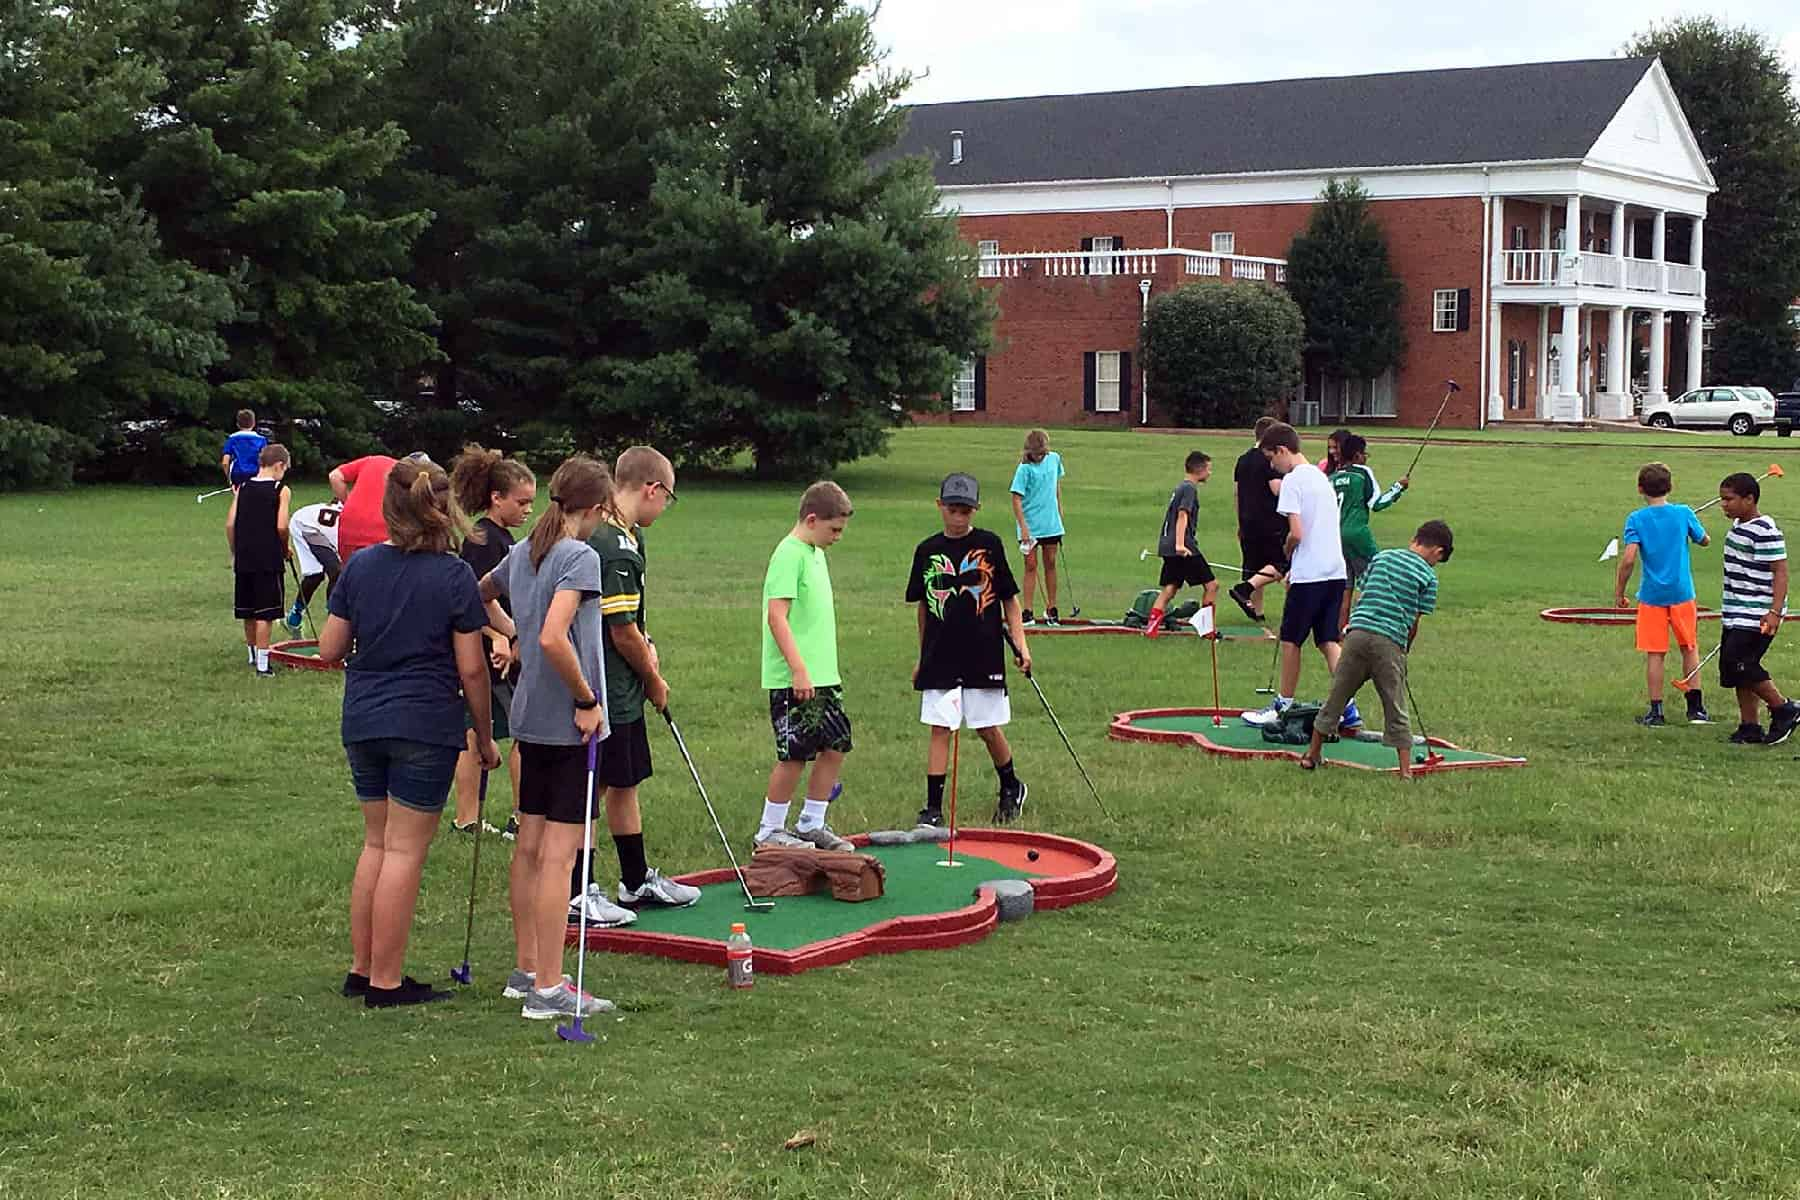 church events Games To Go Nashville